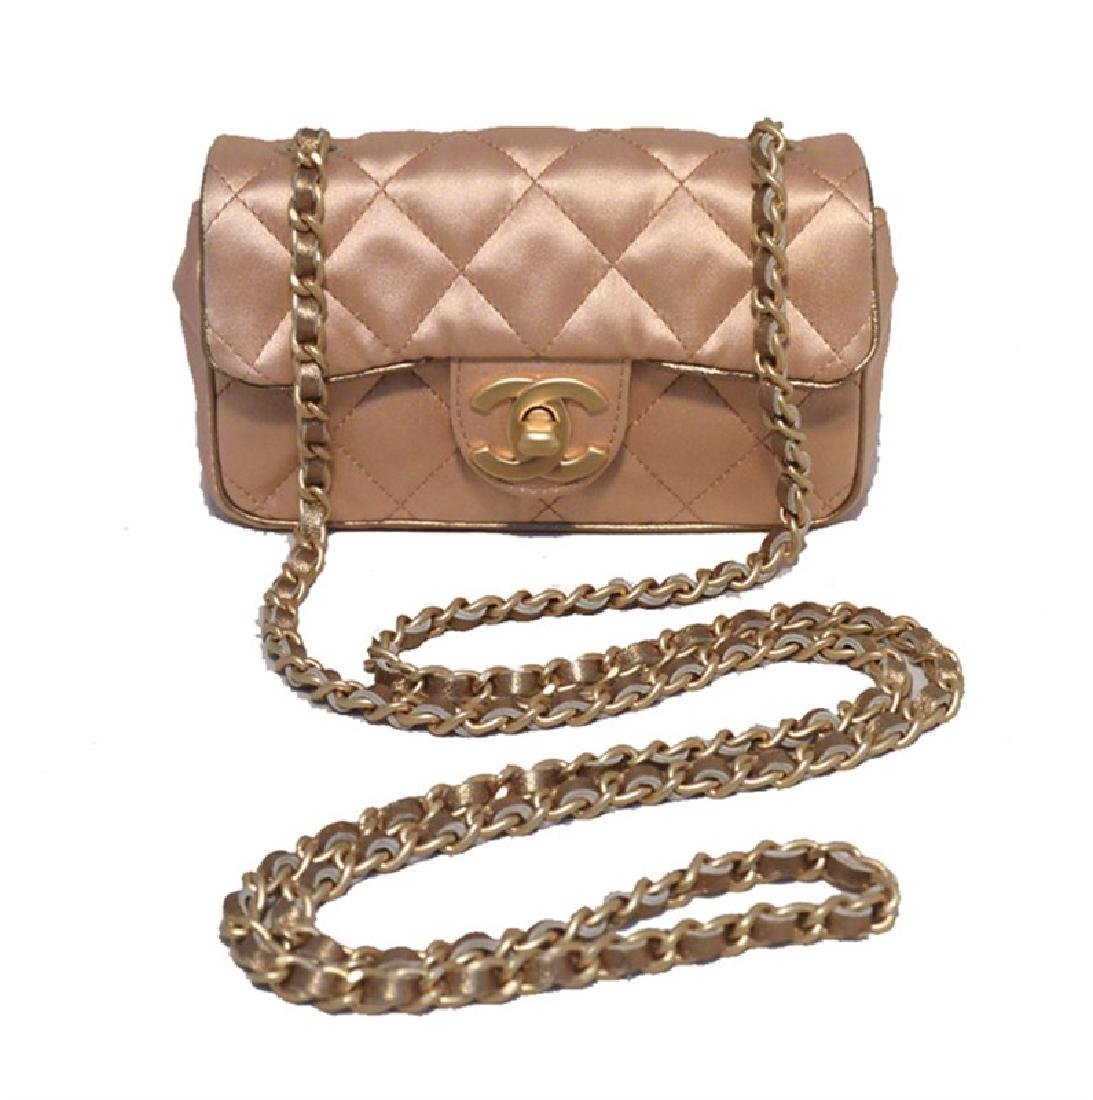 Chanel Pale Pink Quilted Satin Mini Classic Flap